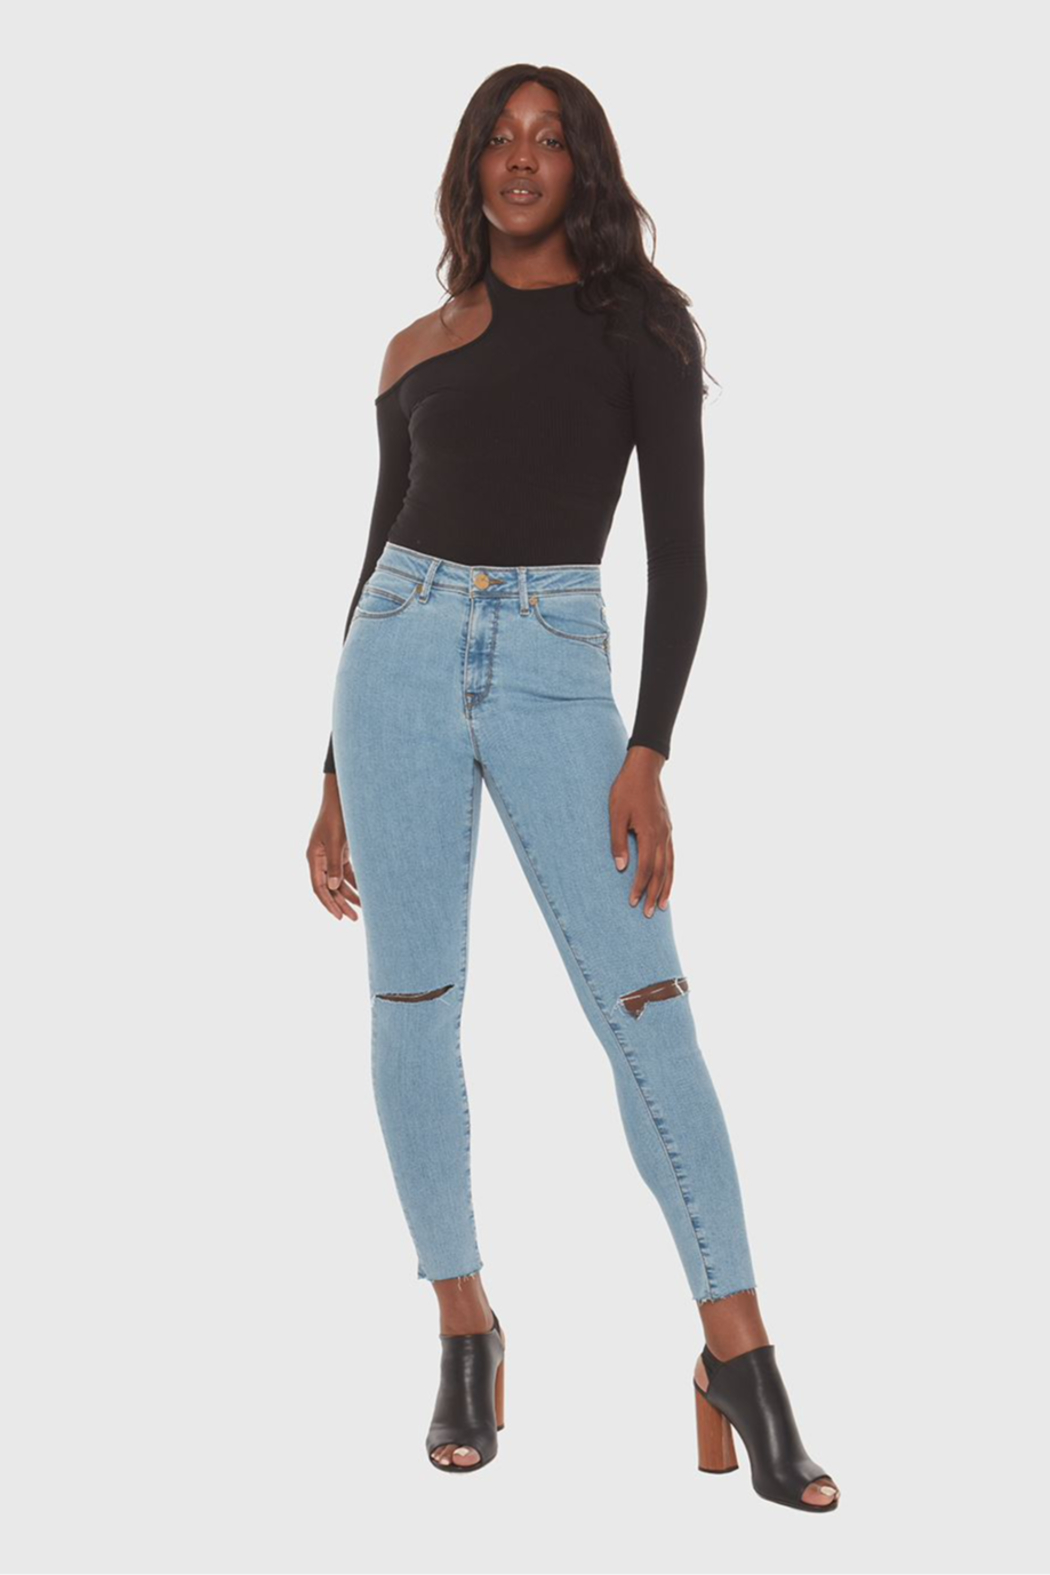 Lola Jeans Alexa Skinny High Rise Jeans - Back Cropped Image